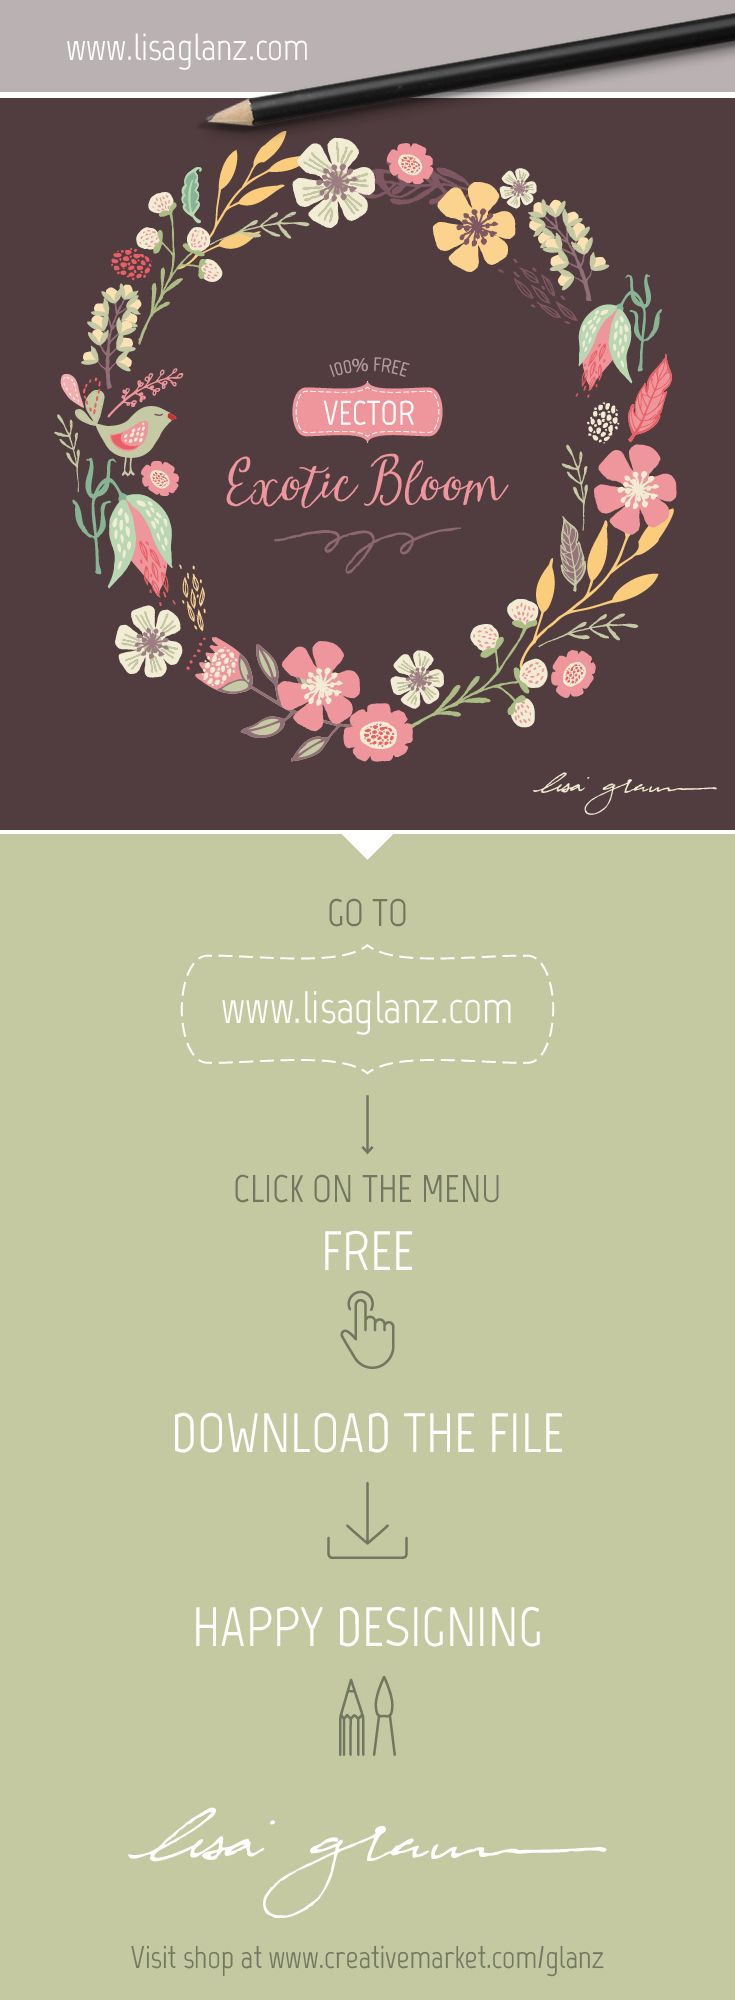 Free vector wreath design. Go to www.lisaglanz.com to download. Enjoy! #free #graphic #illustration #vector